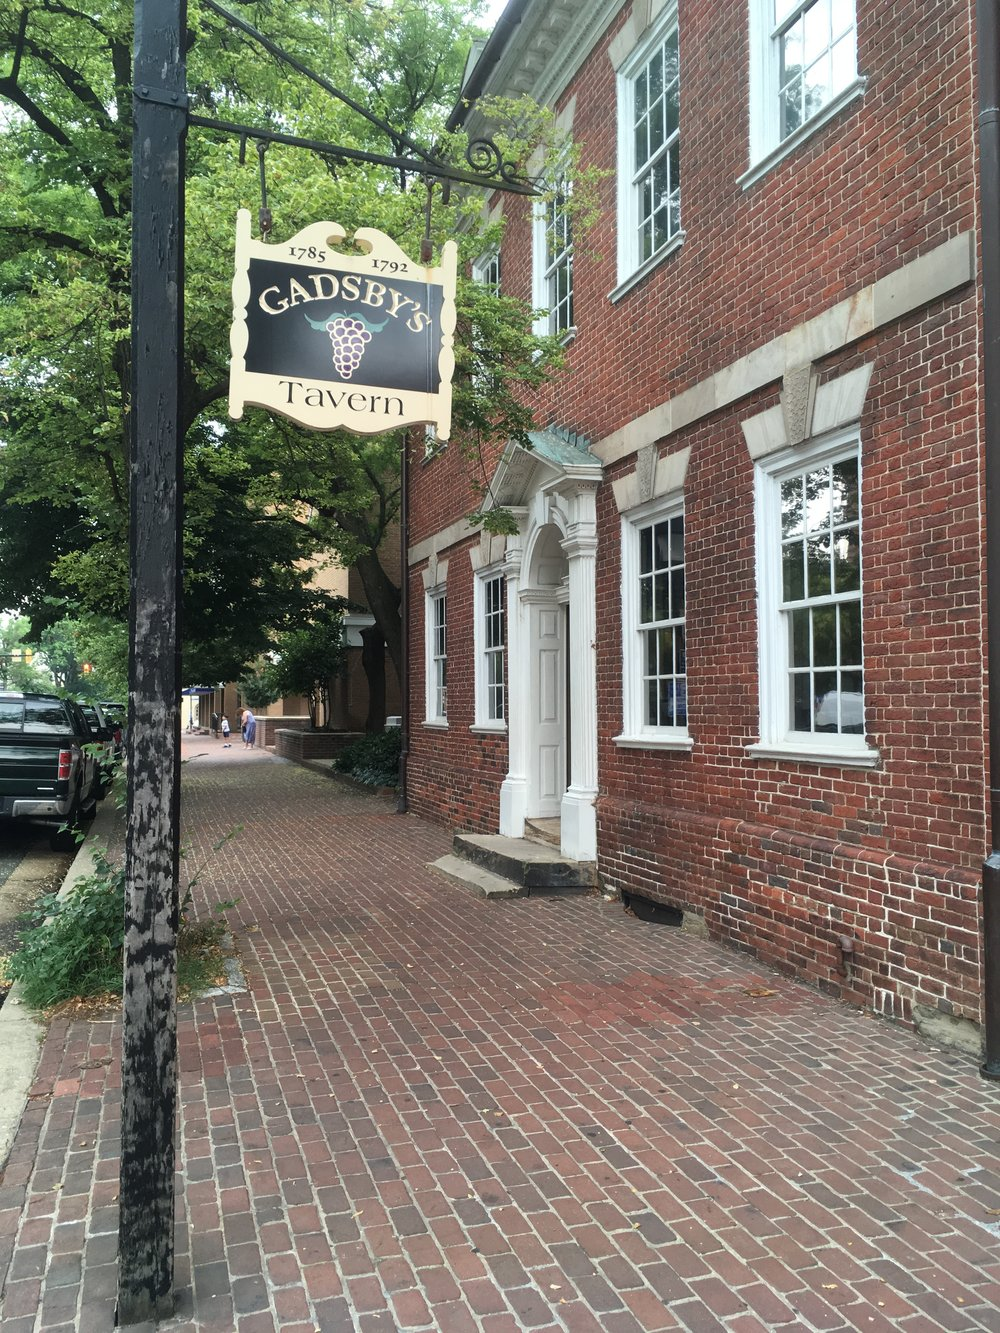 Gadsby's Tavern in Alexandria, Virginia. Photo by Gina Caison.